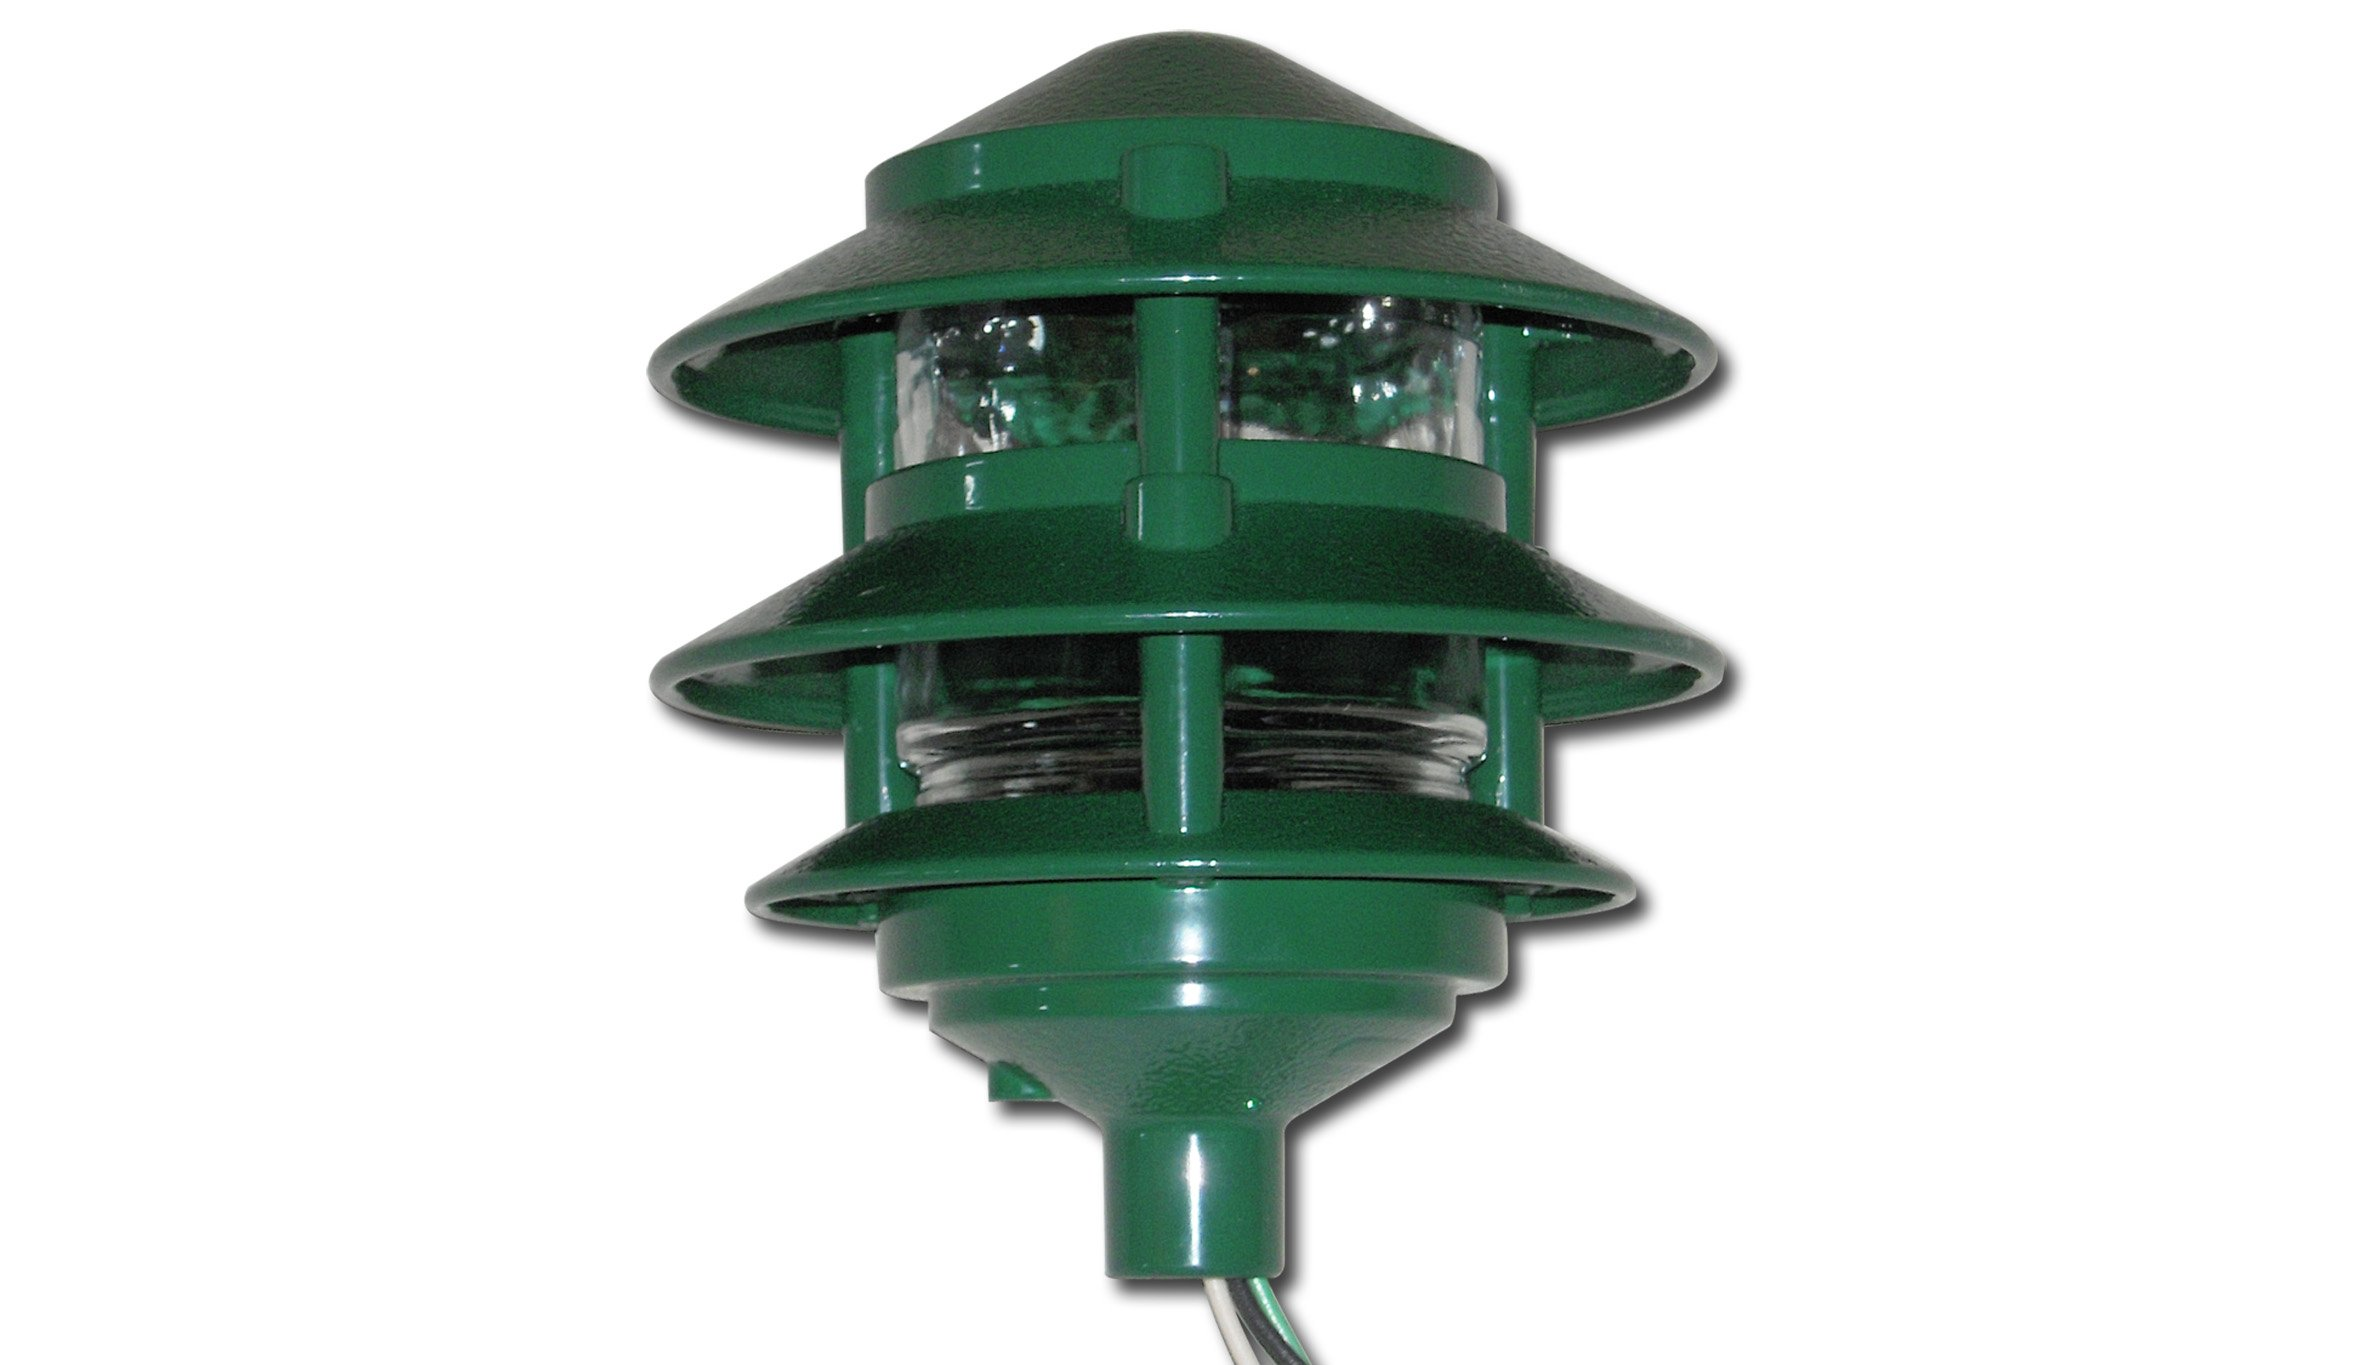 Made in USA Weatherproof Path Light - Green by Greenfield